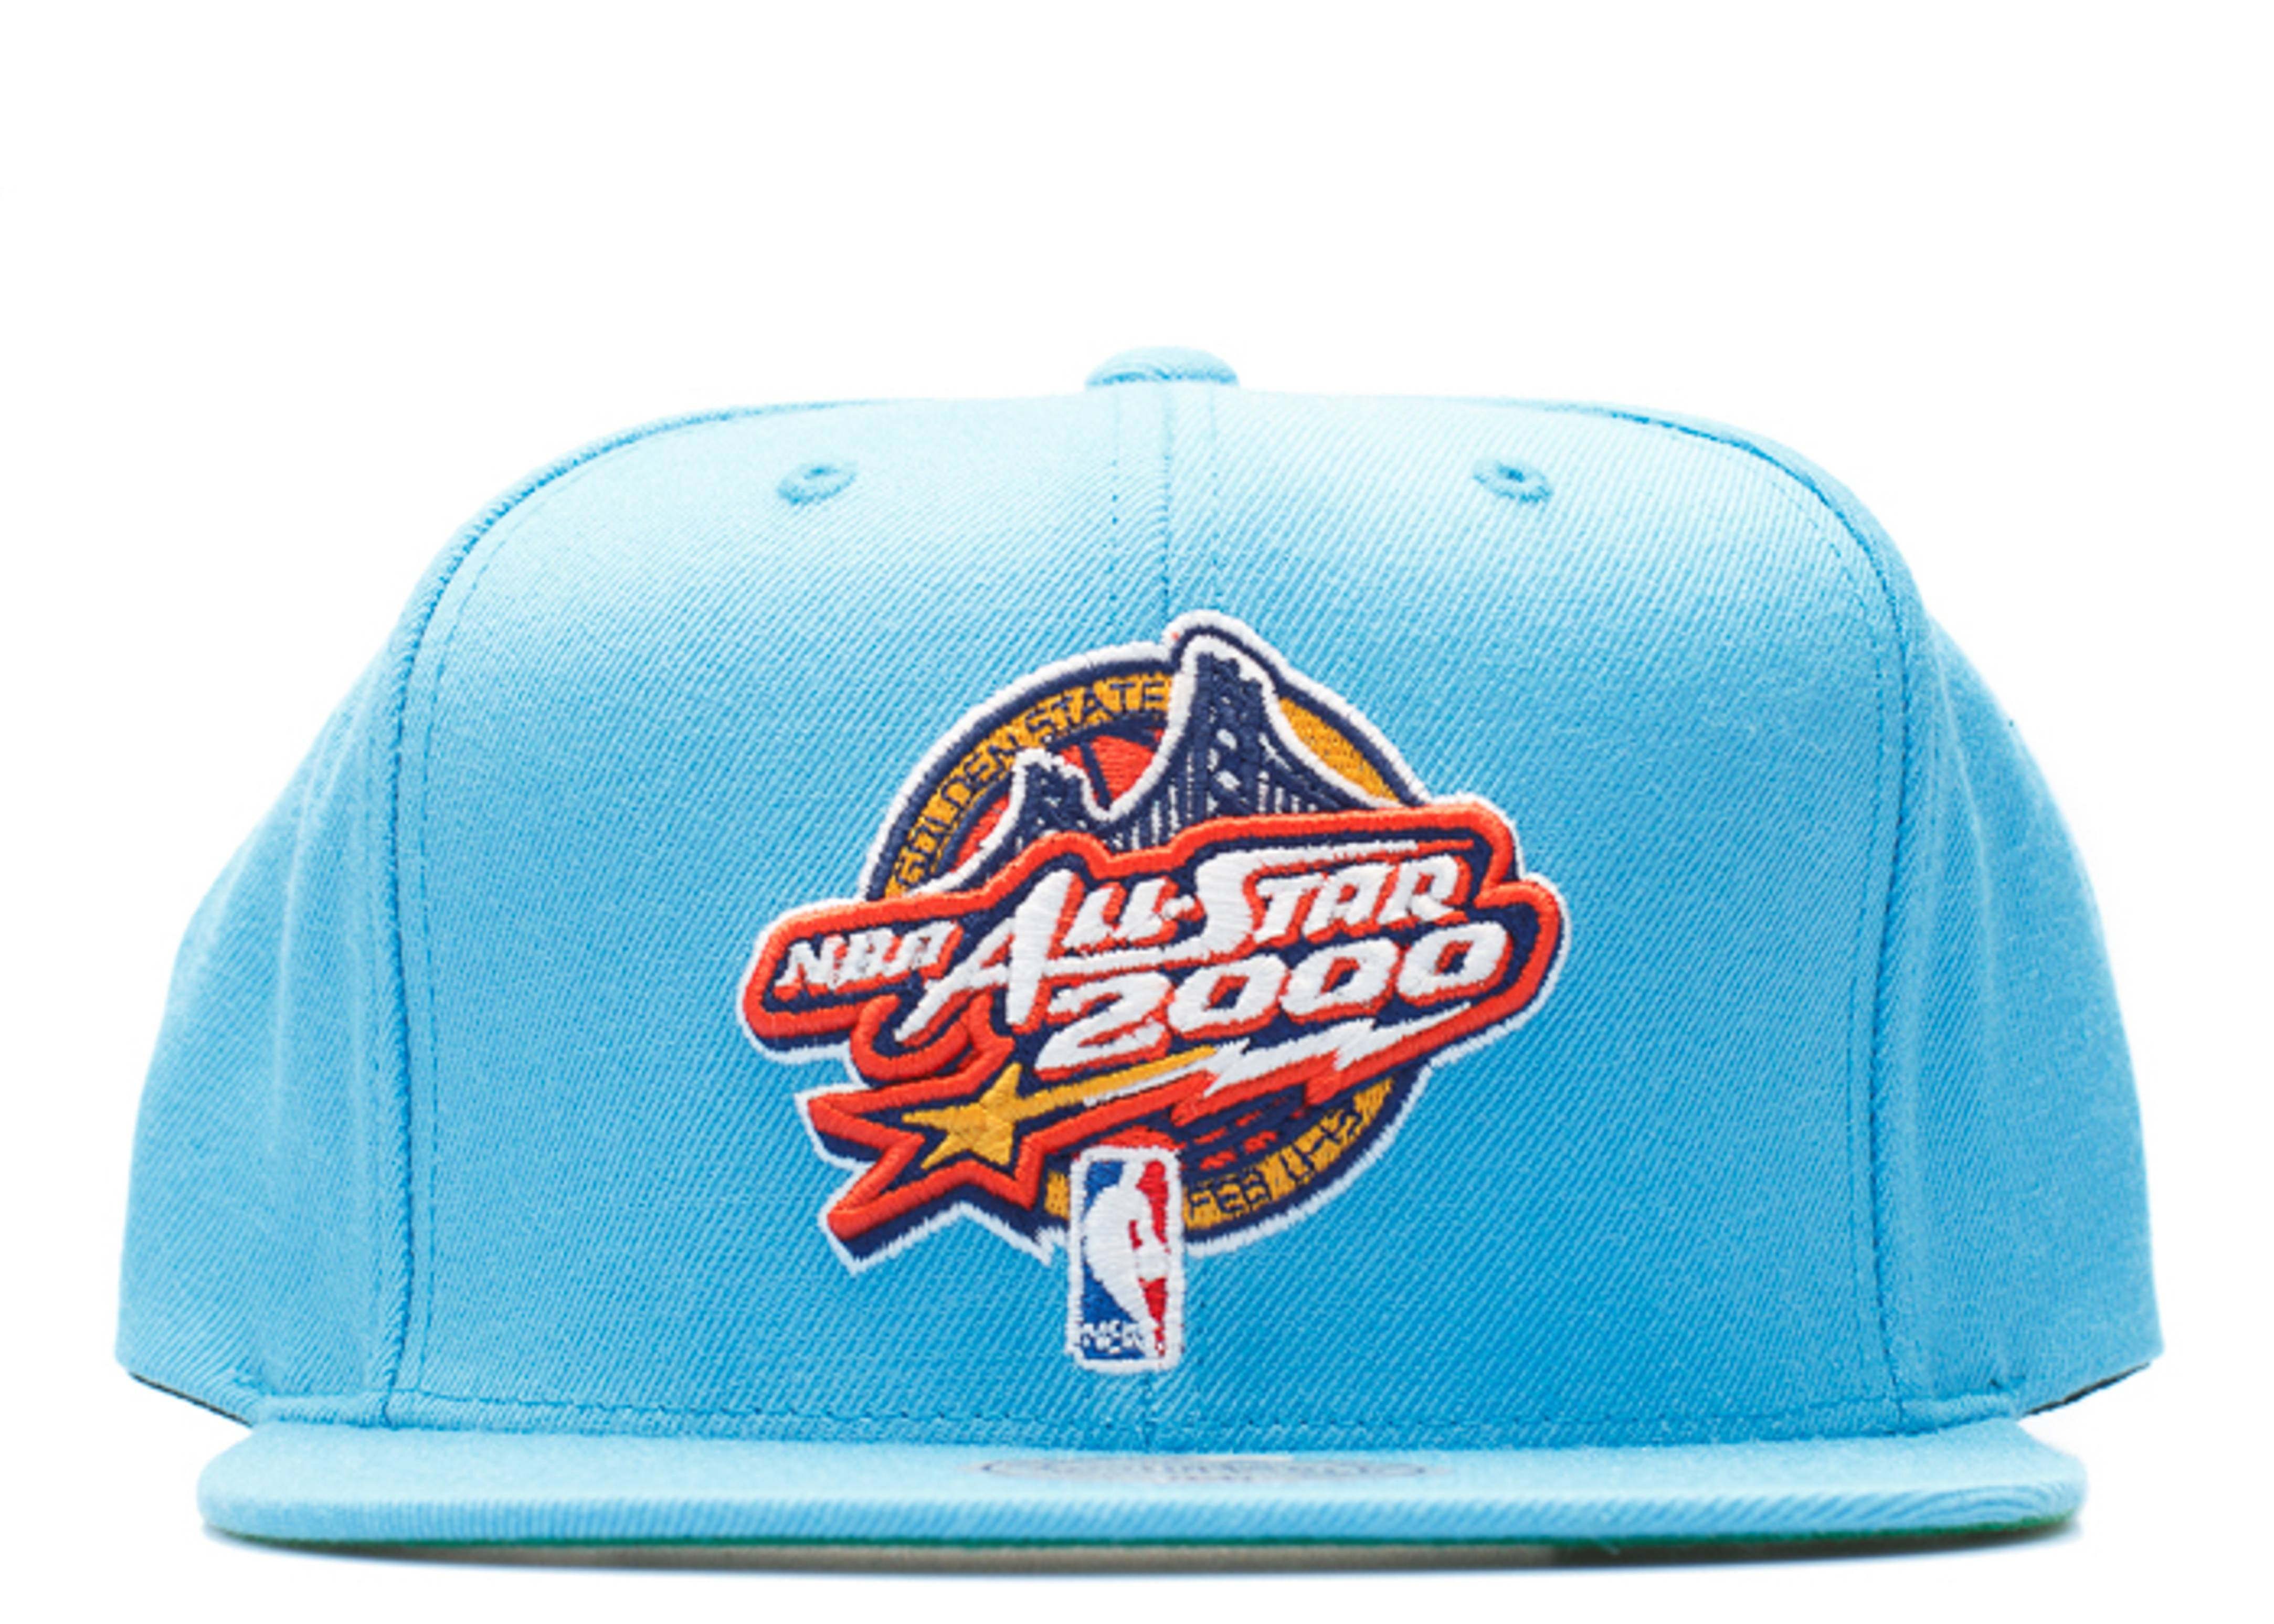 2000 all-star game snap-back